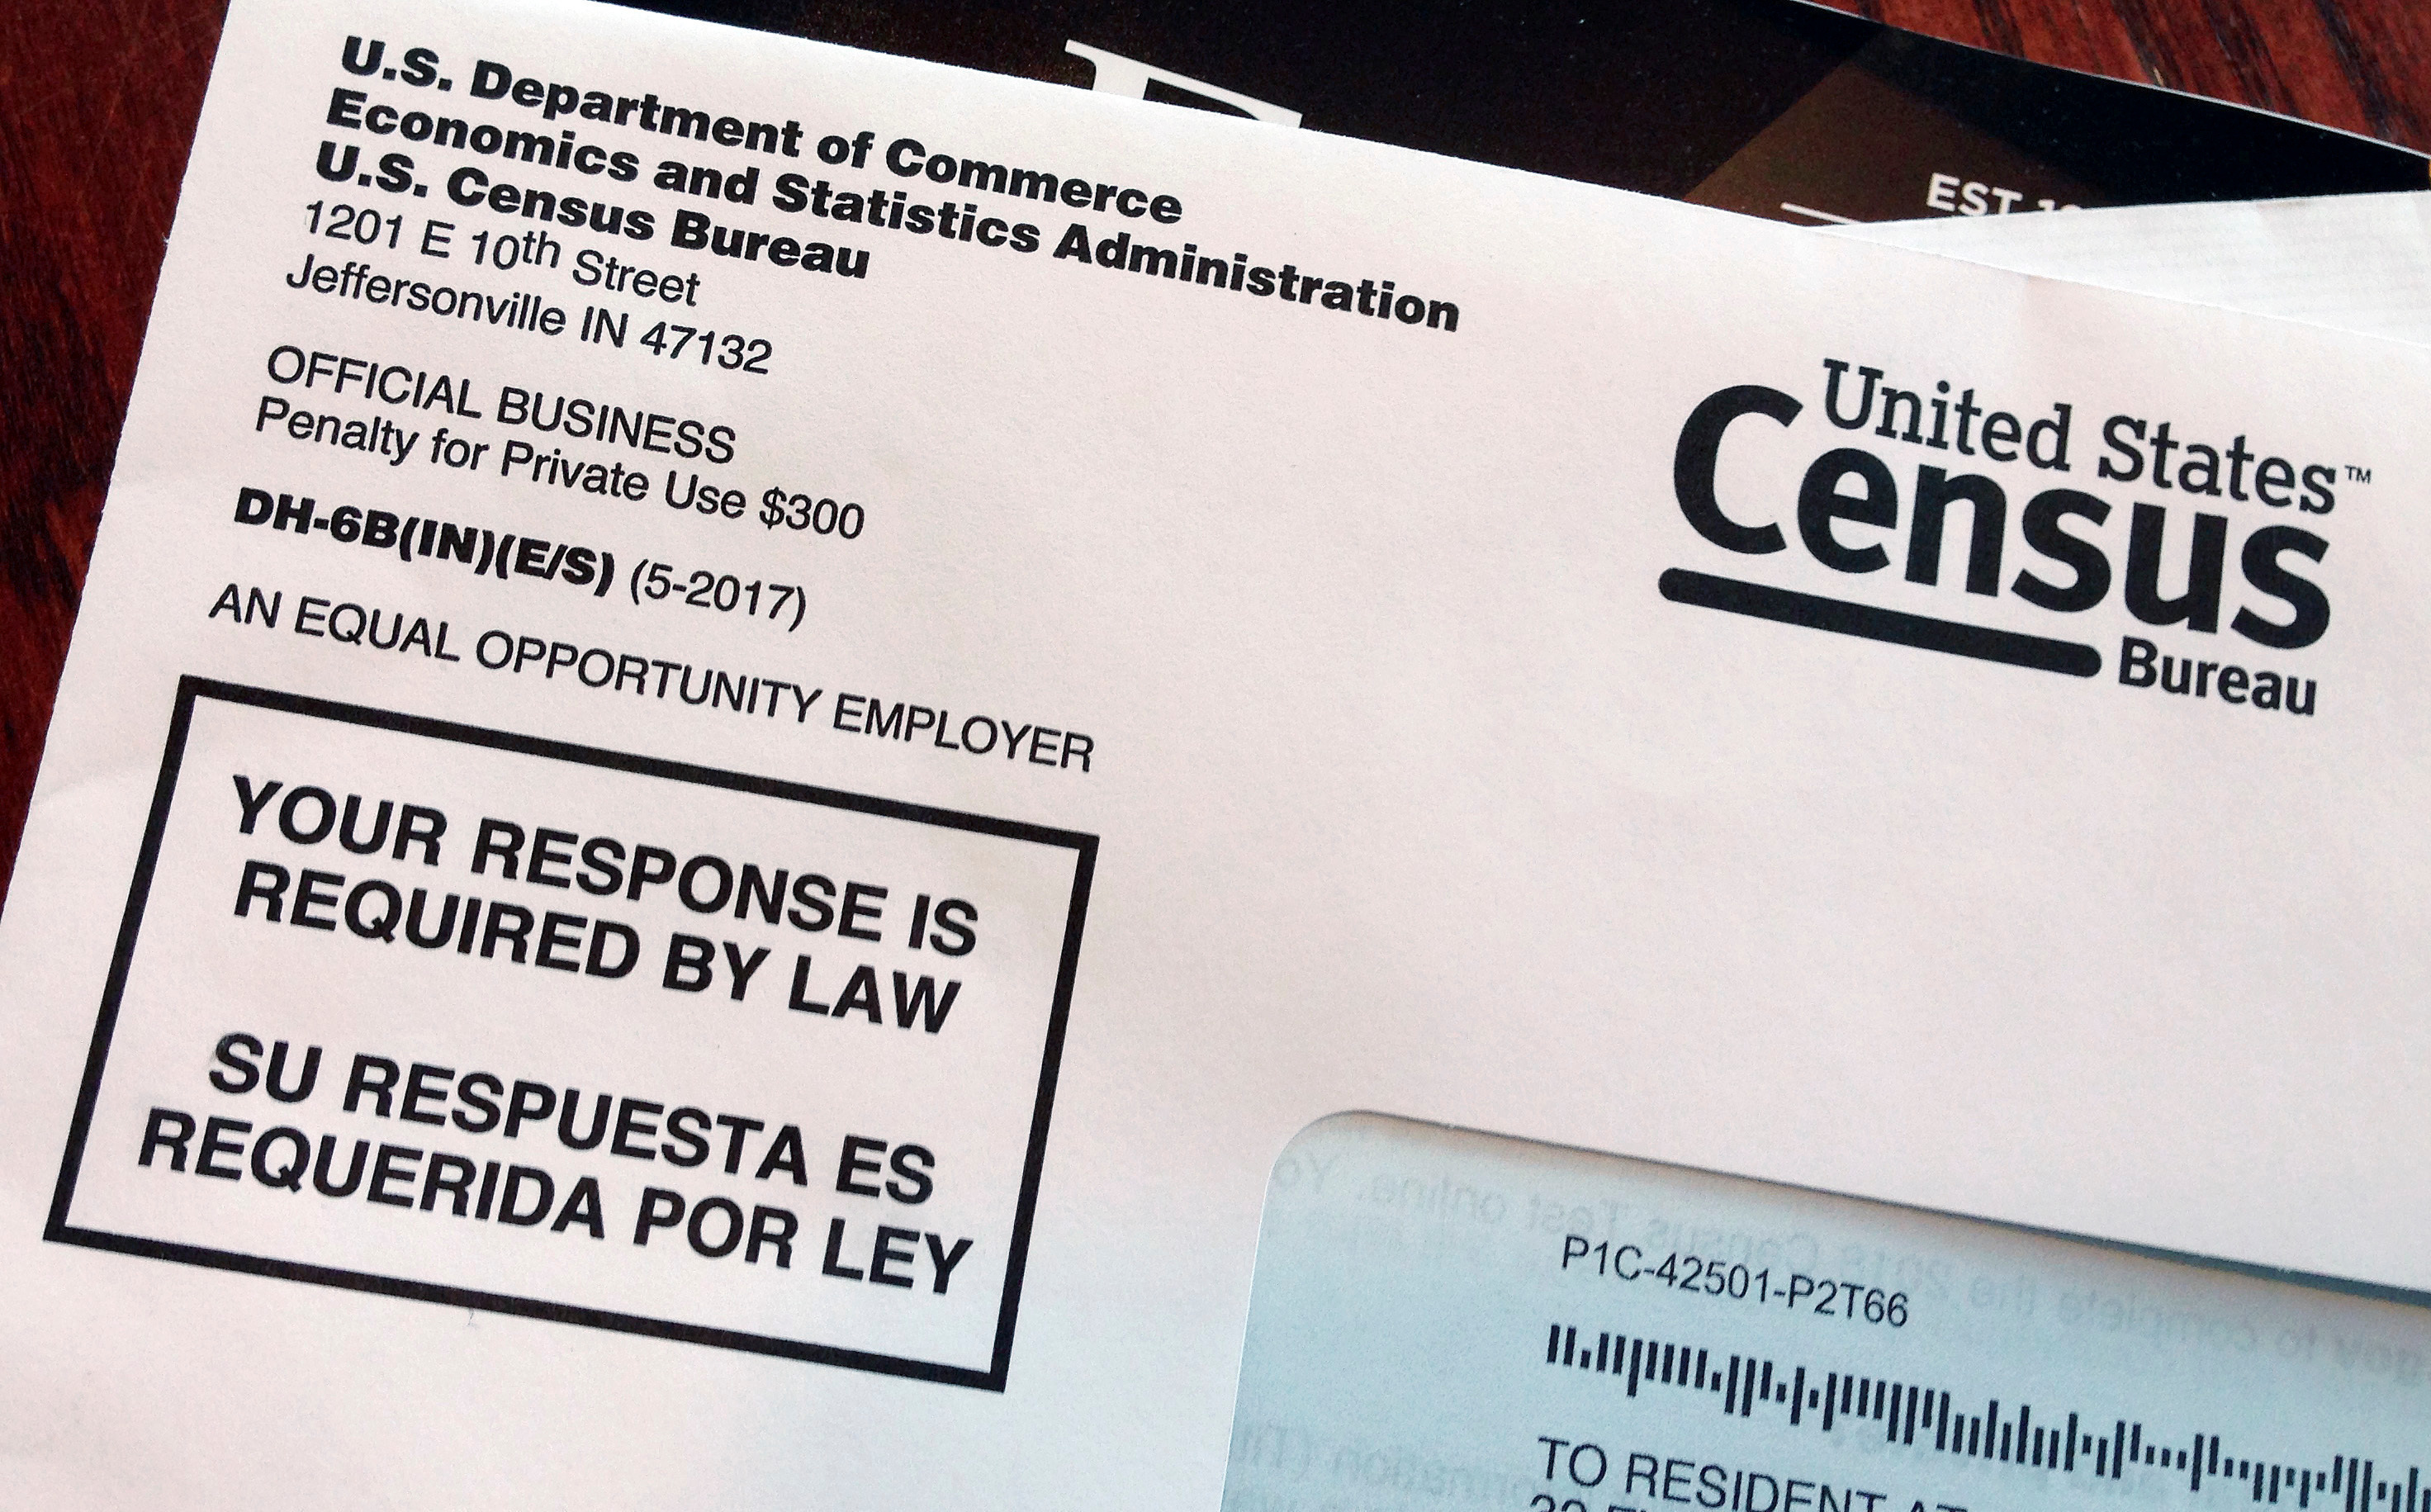 This March 23, 2018, file photo shows an envelope containing a 2018 census letter mailed to a U.S. resident.